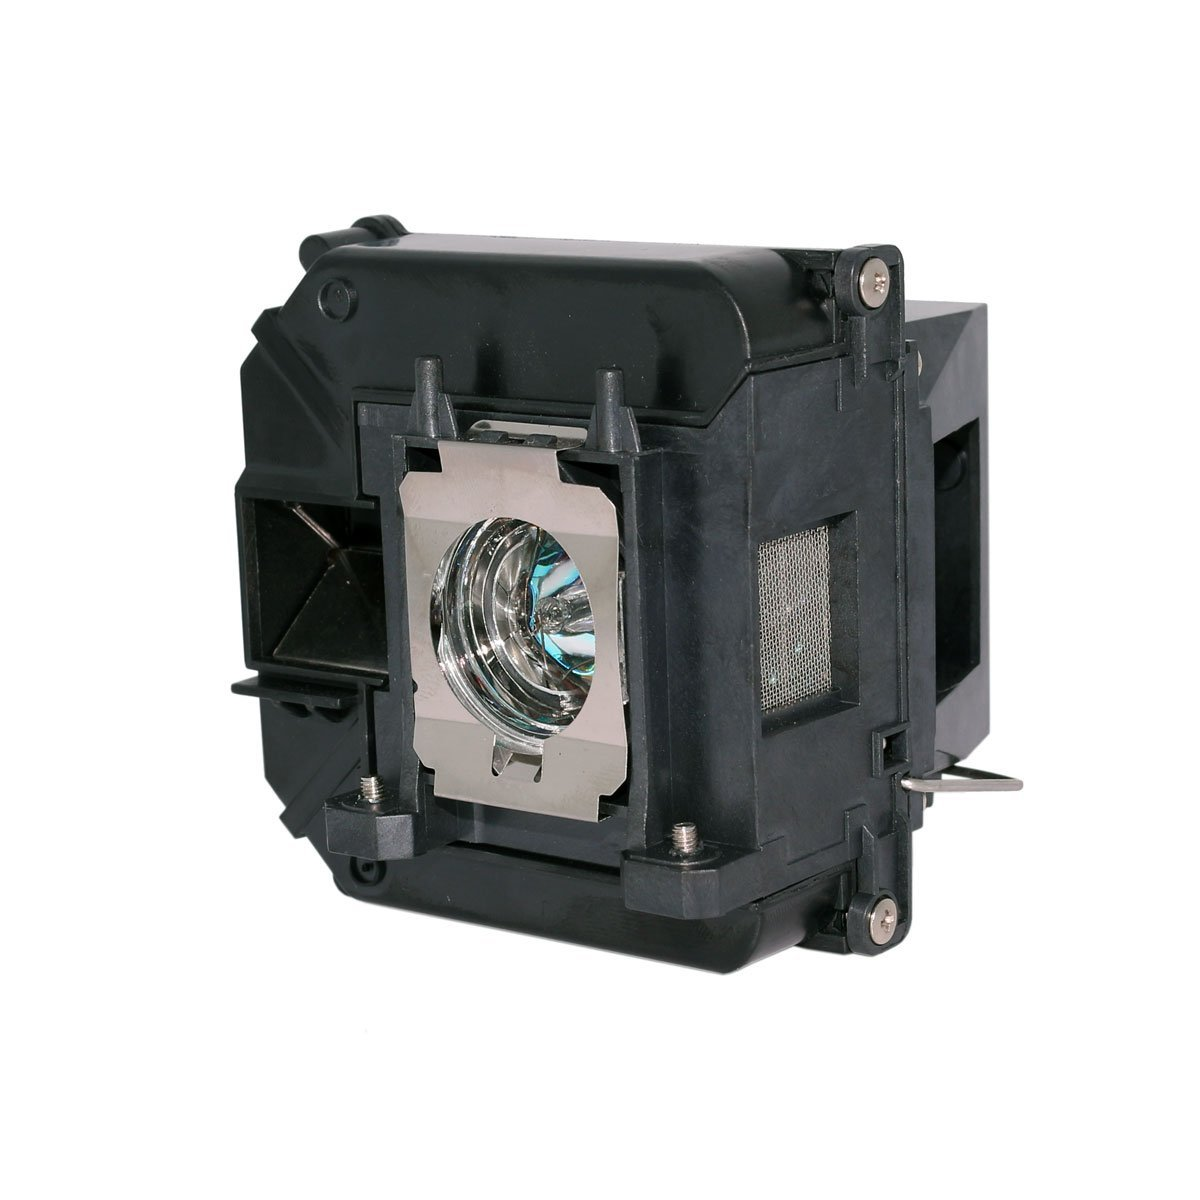 AuraBeam Professional Epson PowerLite Home Cinema 3020 Projector Replacement Lamp with Housing (Powered by Osram)